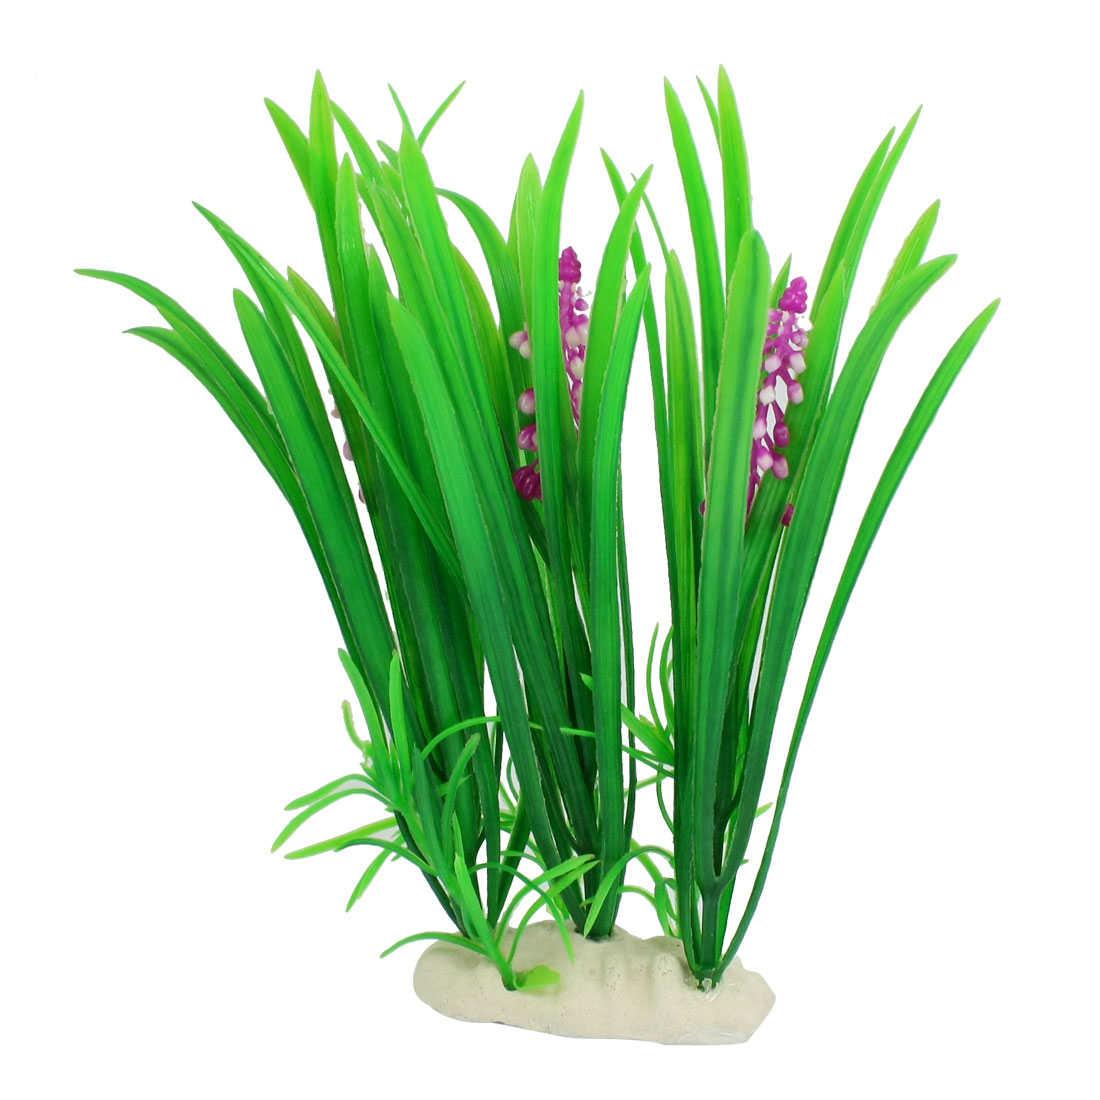 Fish Tank Fishbowl Decoration Fuchsia Flower Green Leaf Plastic Aquatic Plant